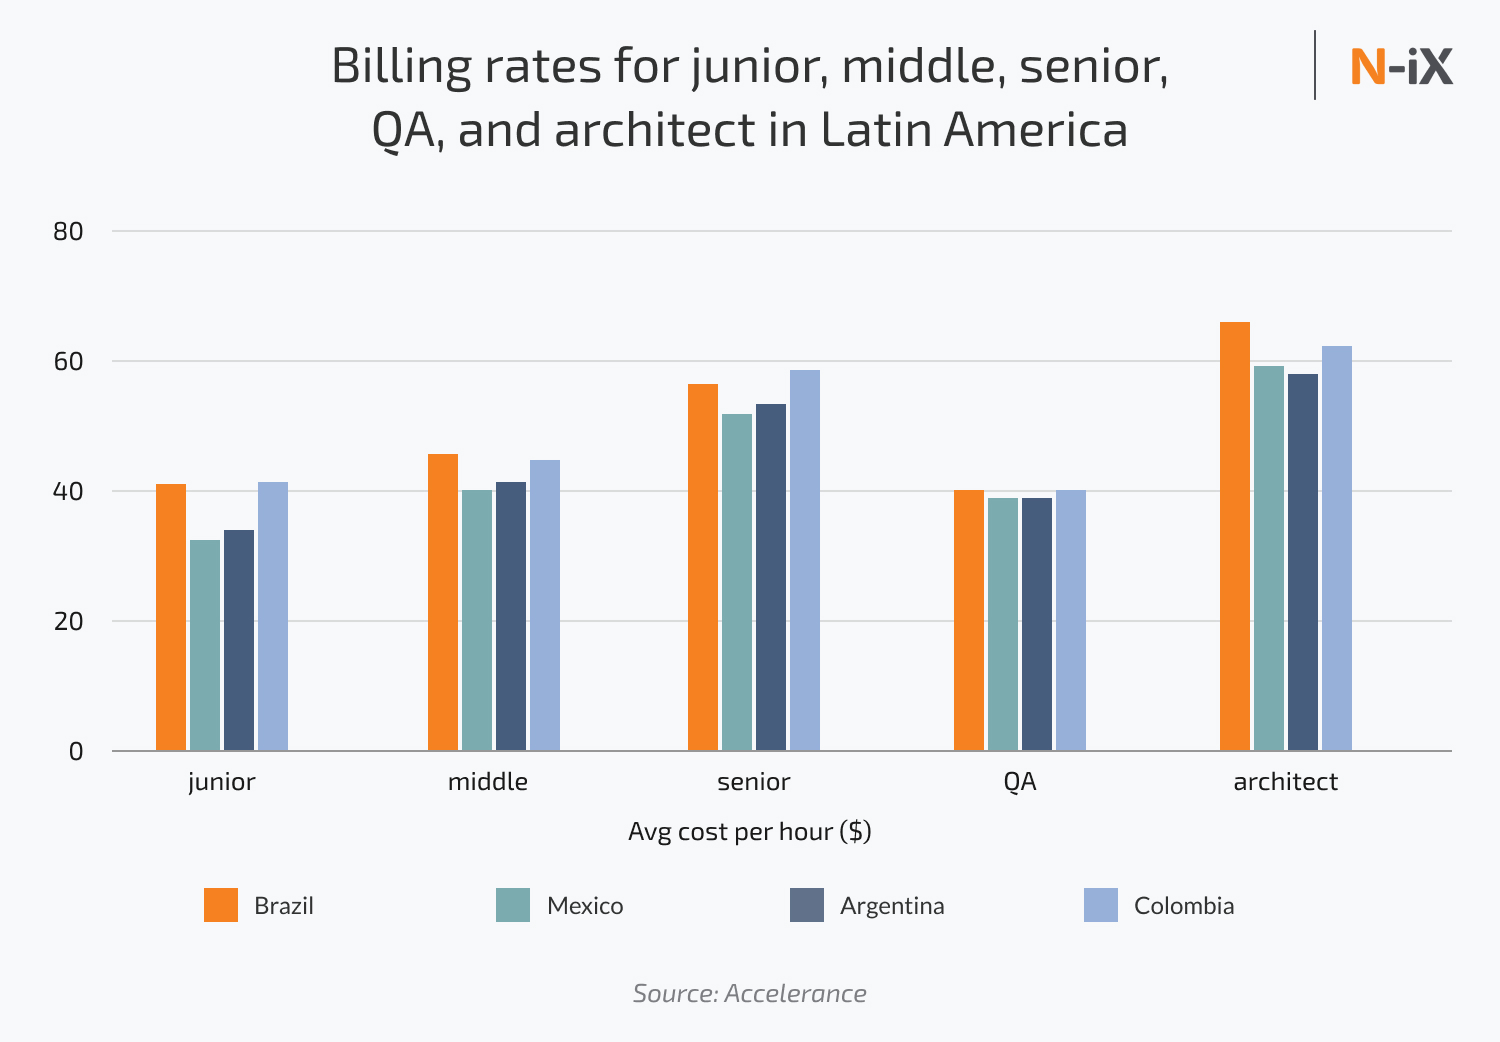 billing rates for software engineer in Latin America